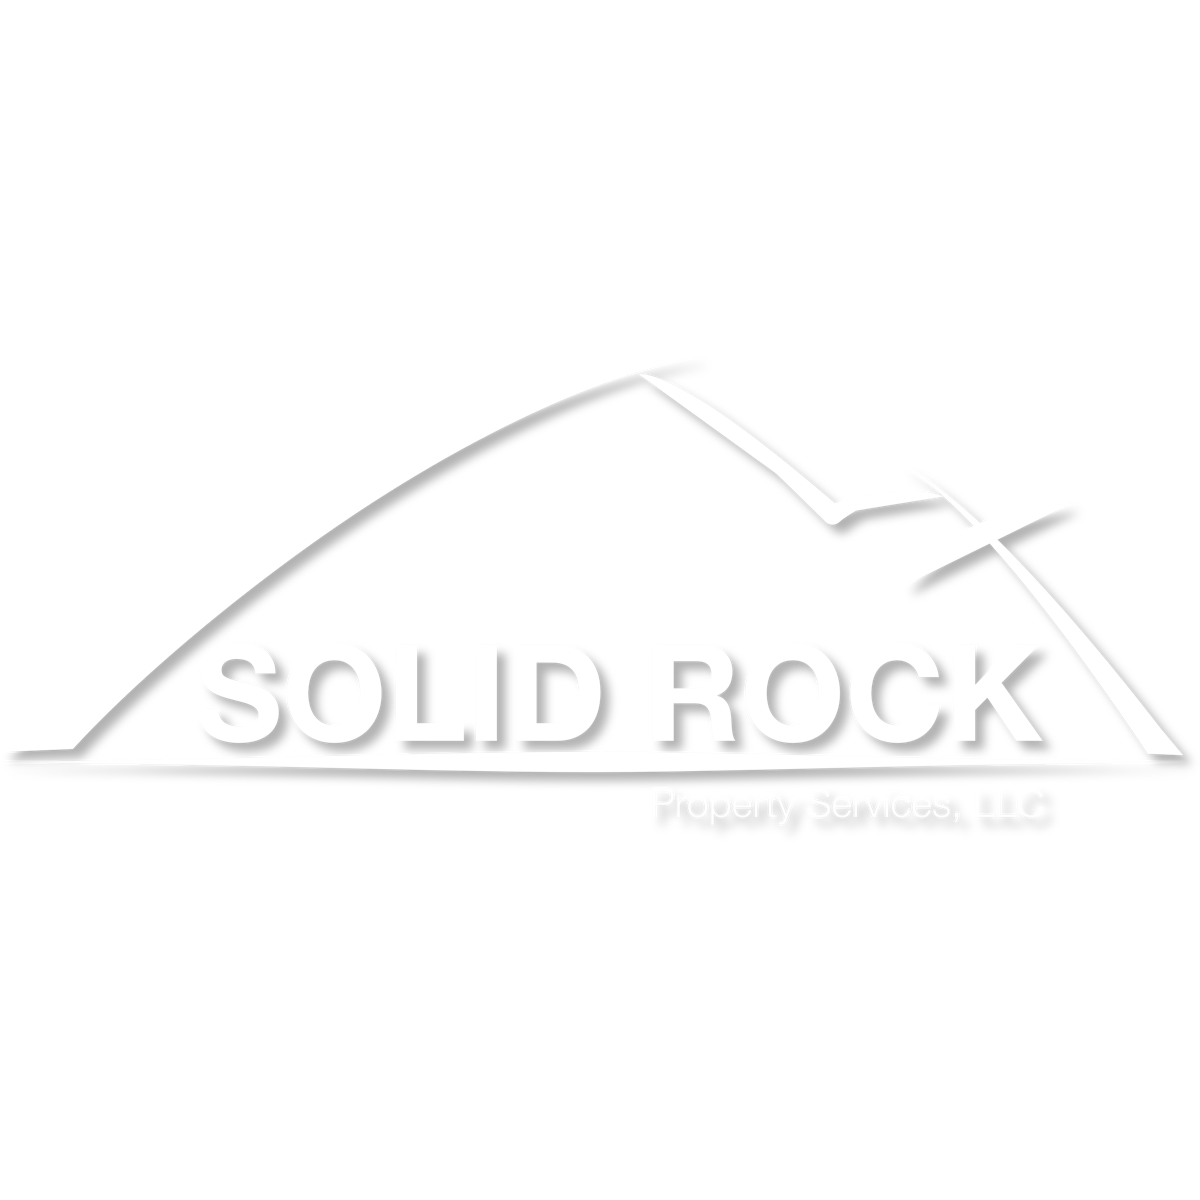 Solid Rock Property Services